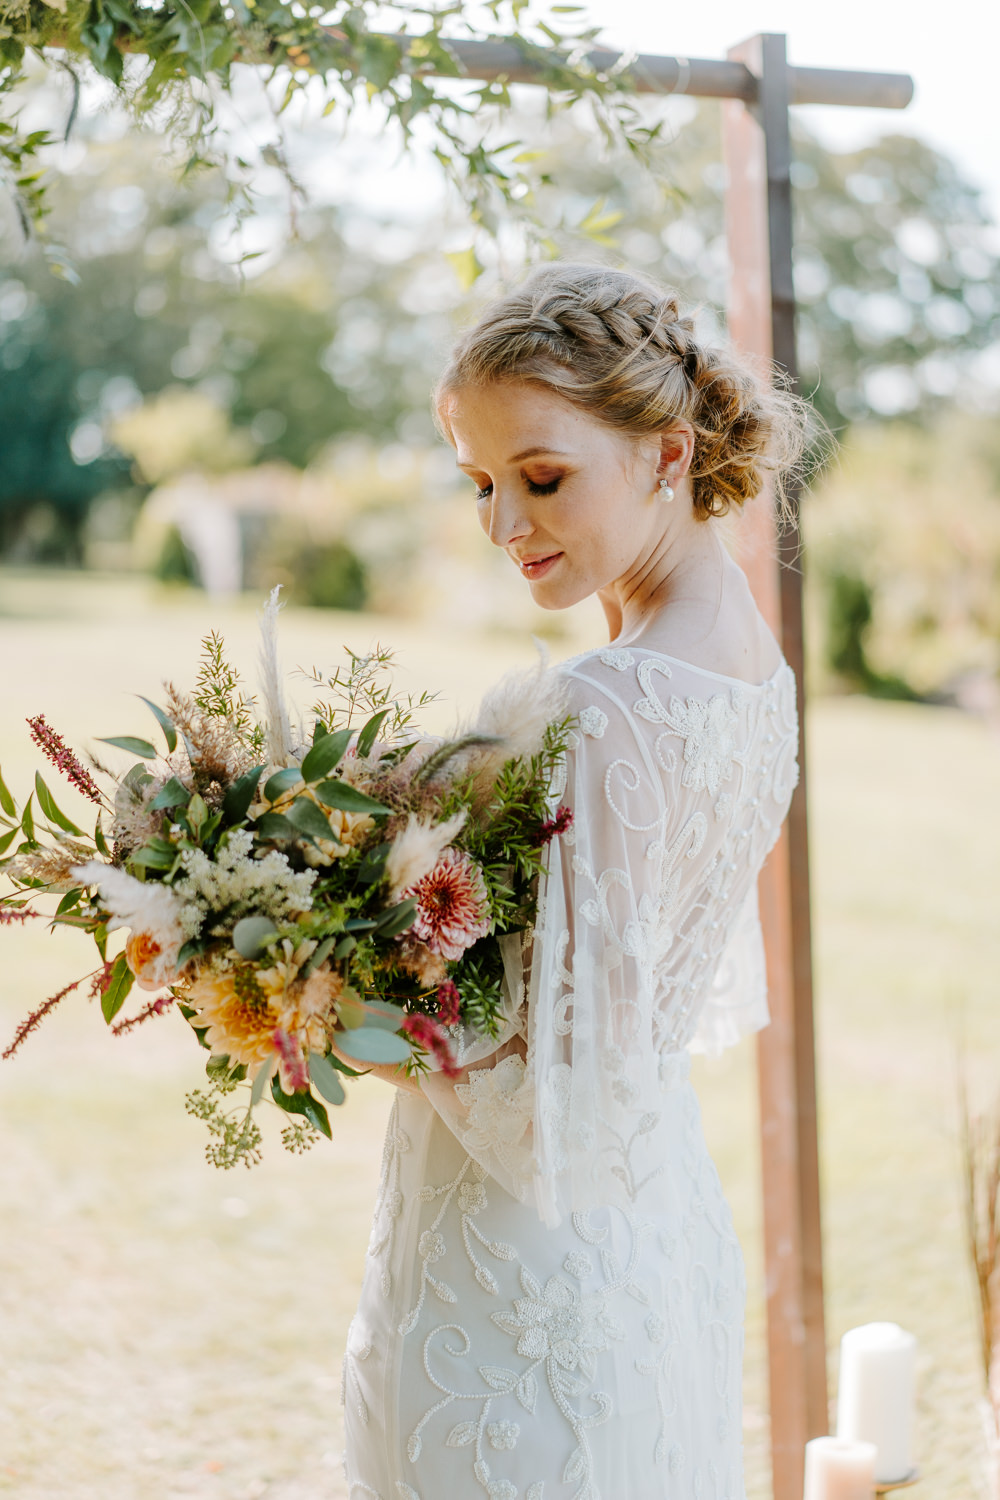 Bride Bridal Hair Style Up Do Plait Braid Contemporary Wedding Ideas Chloe Ely Photography